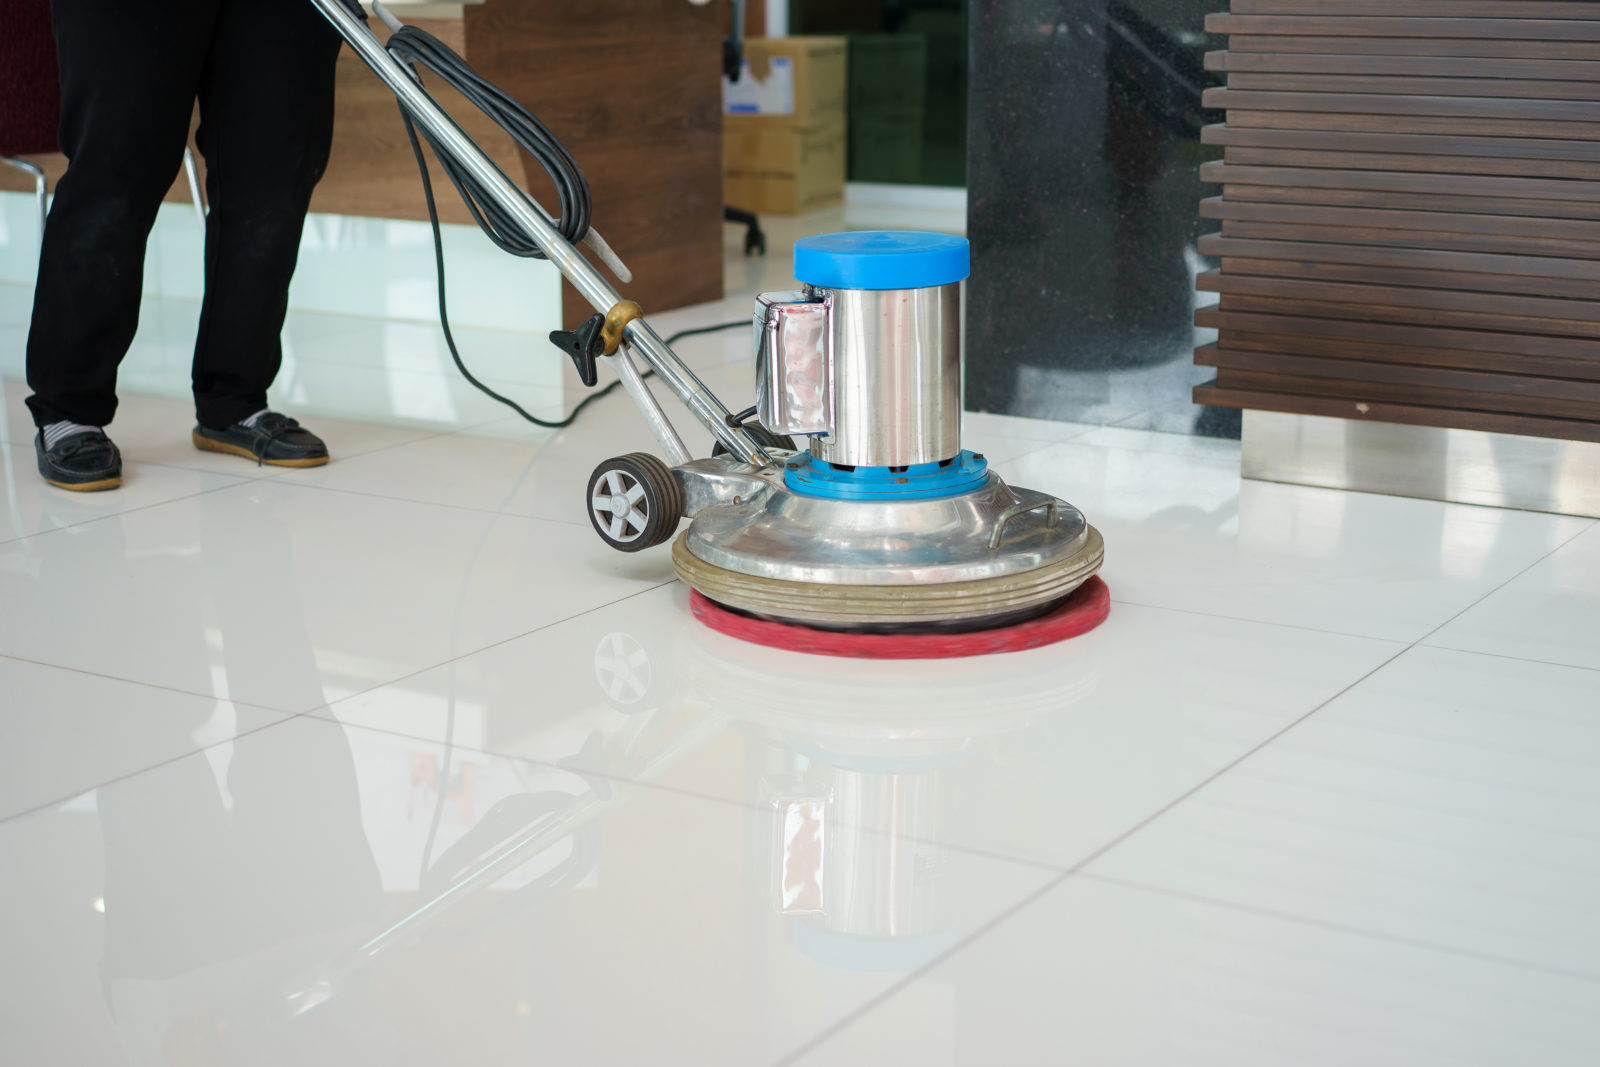 5 Reasons Why You Should Invest in Commercial Cleaning